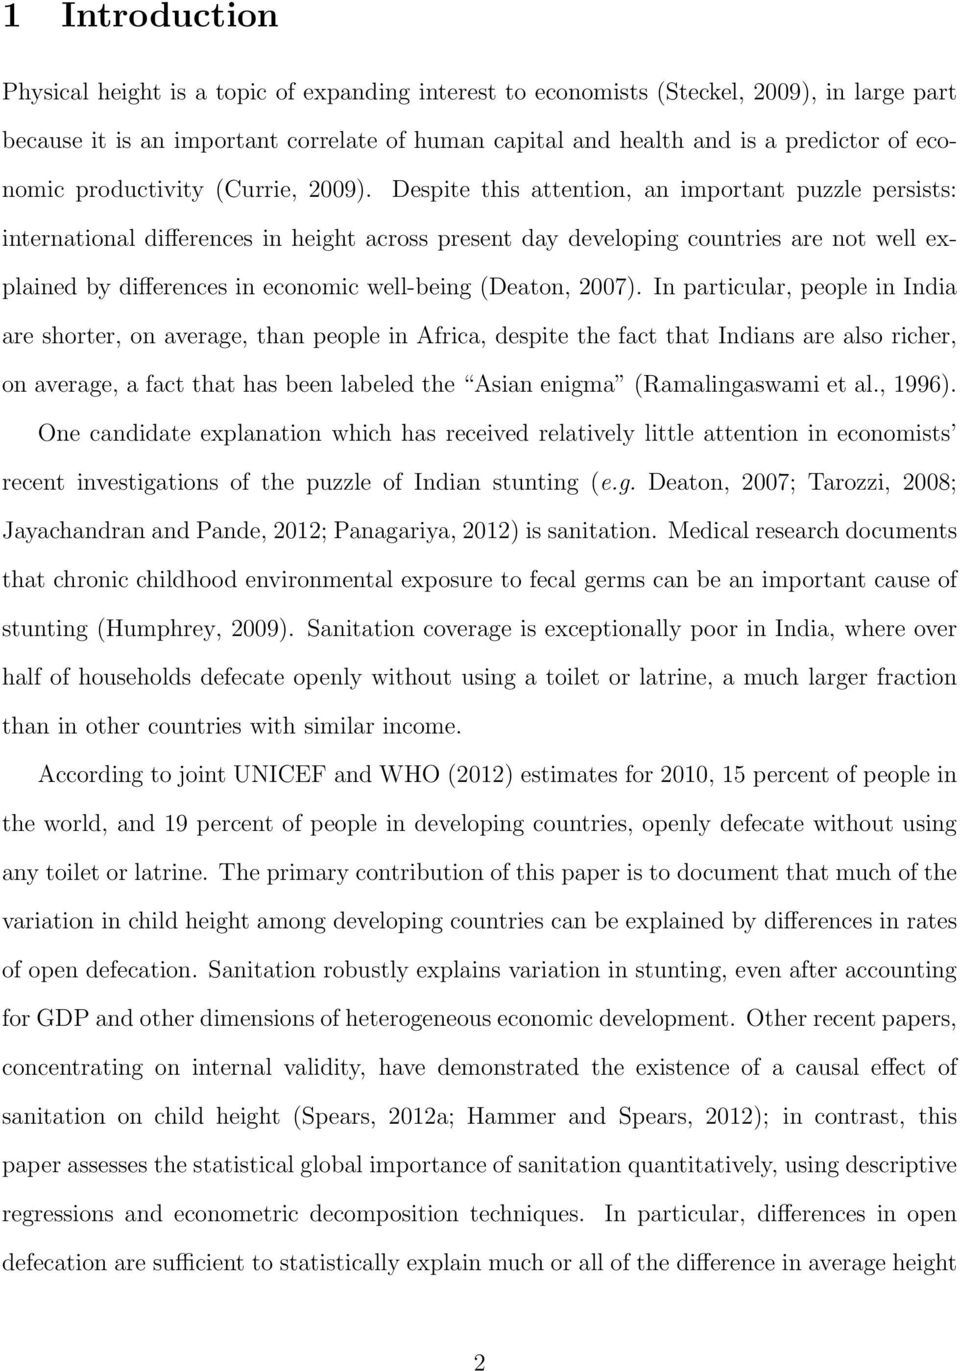 Despite this attention, an important puzzle persists: international differences in height across present day developing countries are not well explained by differences in economic well-being (Deaton,